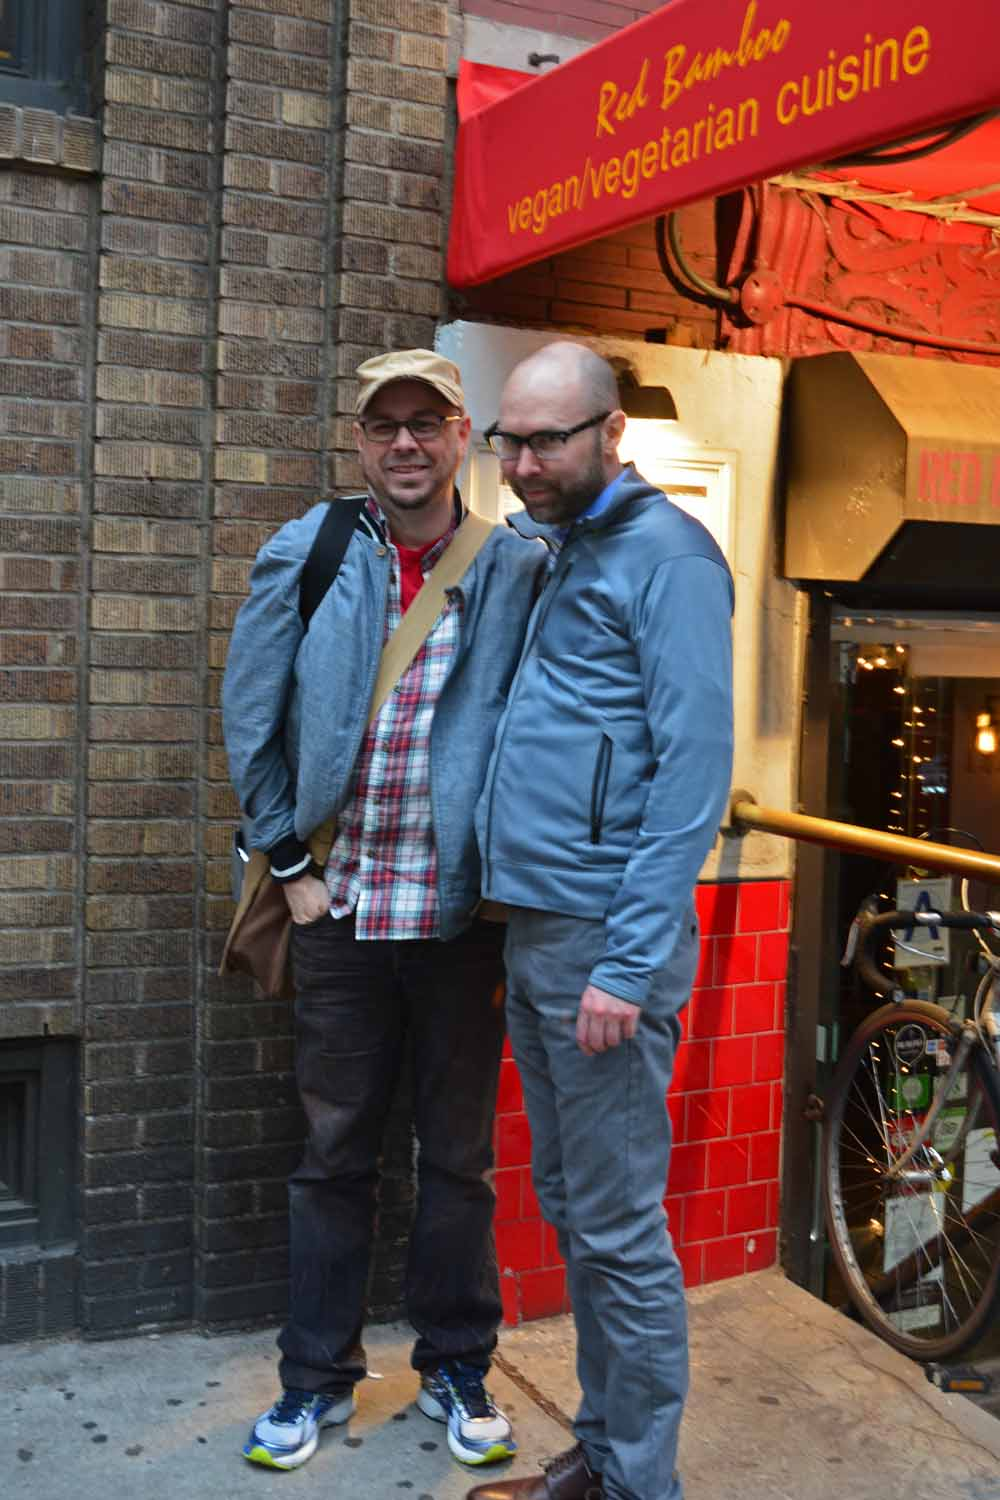 Karl and Cully on their home turf in NYC, they can always find great places to eat!